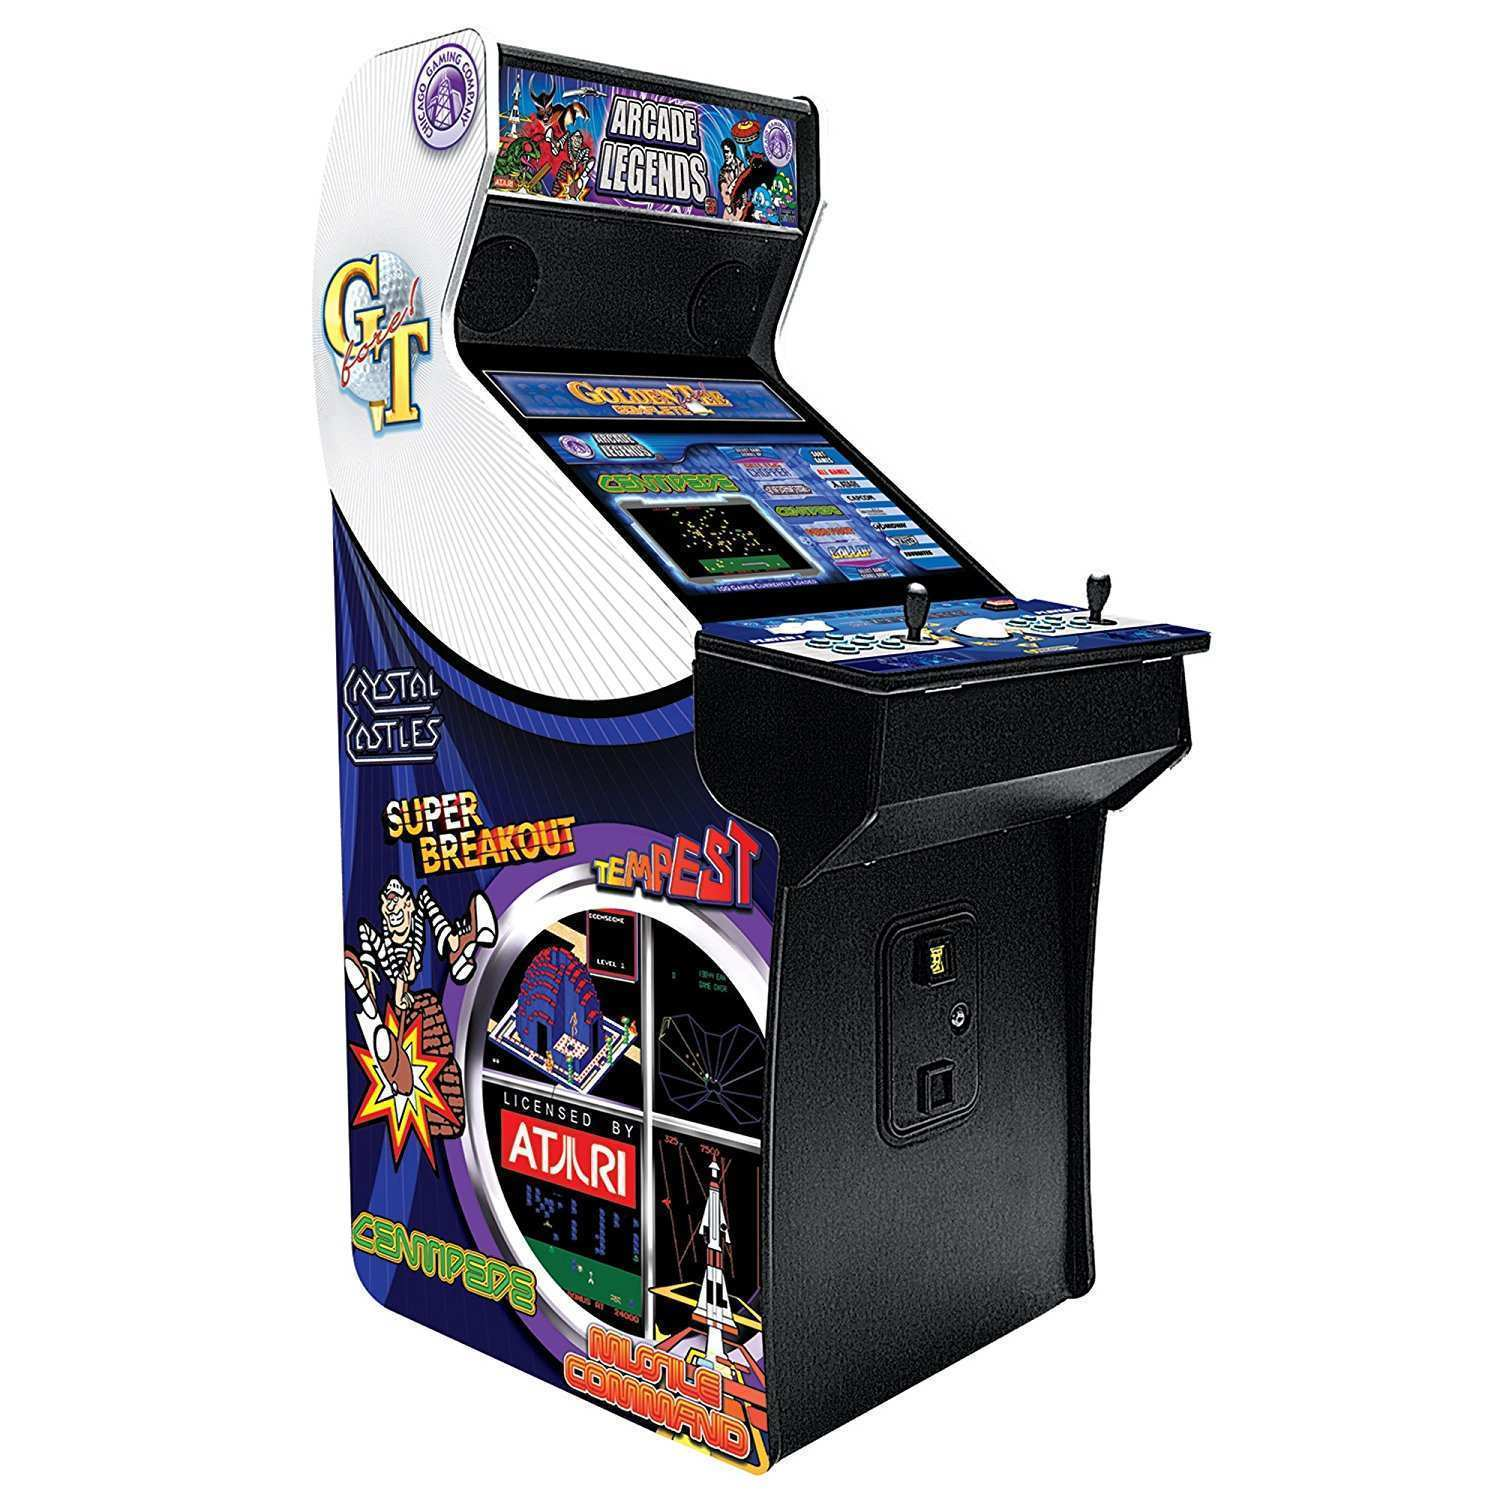 97 Concept of Mini Arcade 2019 In 1 Price and Review for Mini Arcade 2019 In 1